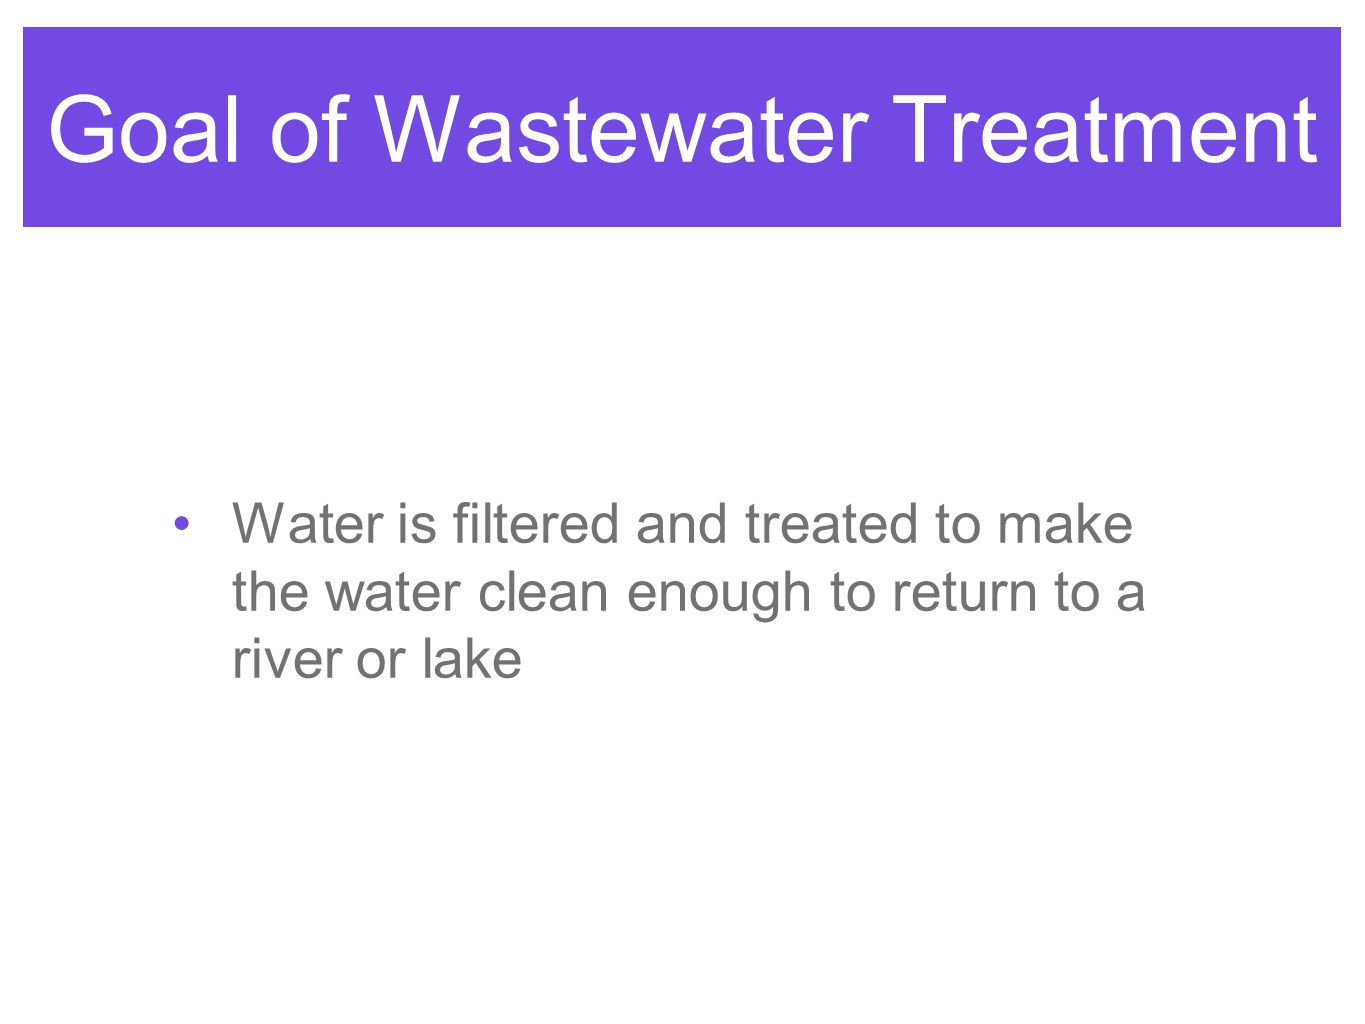 Goal of Wastewater Treatment